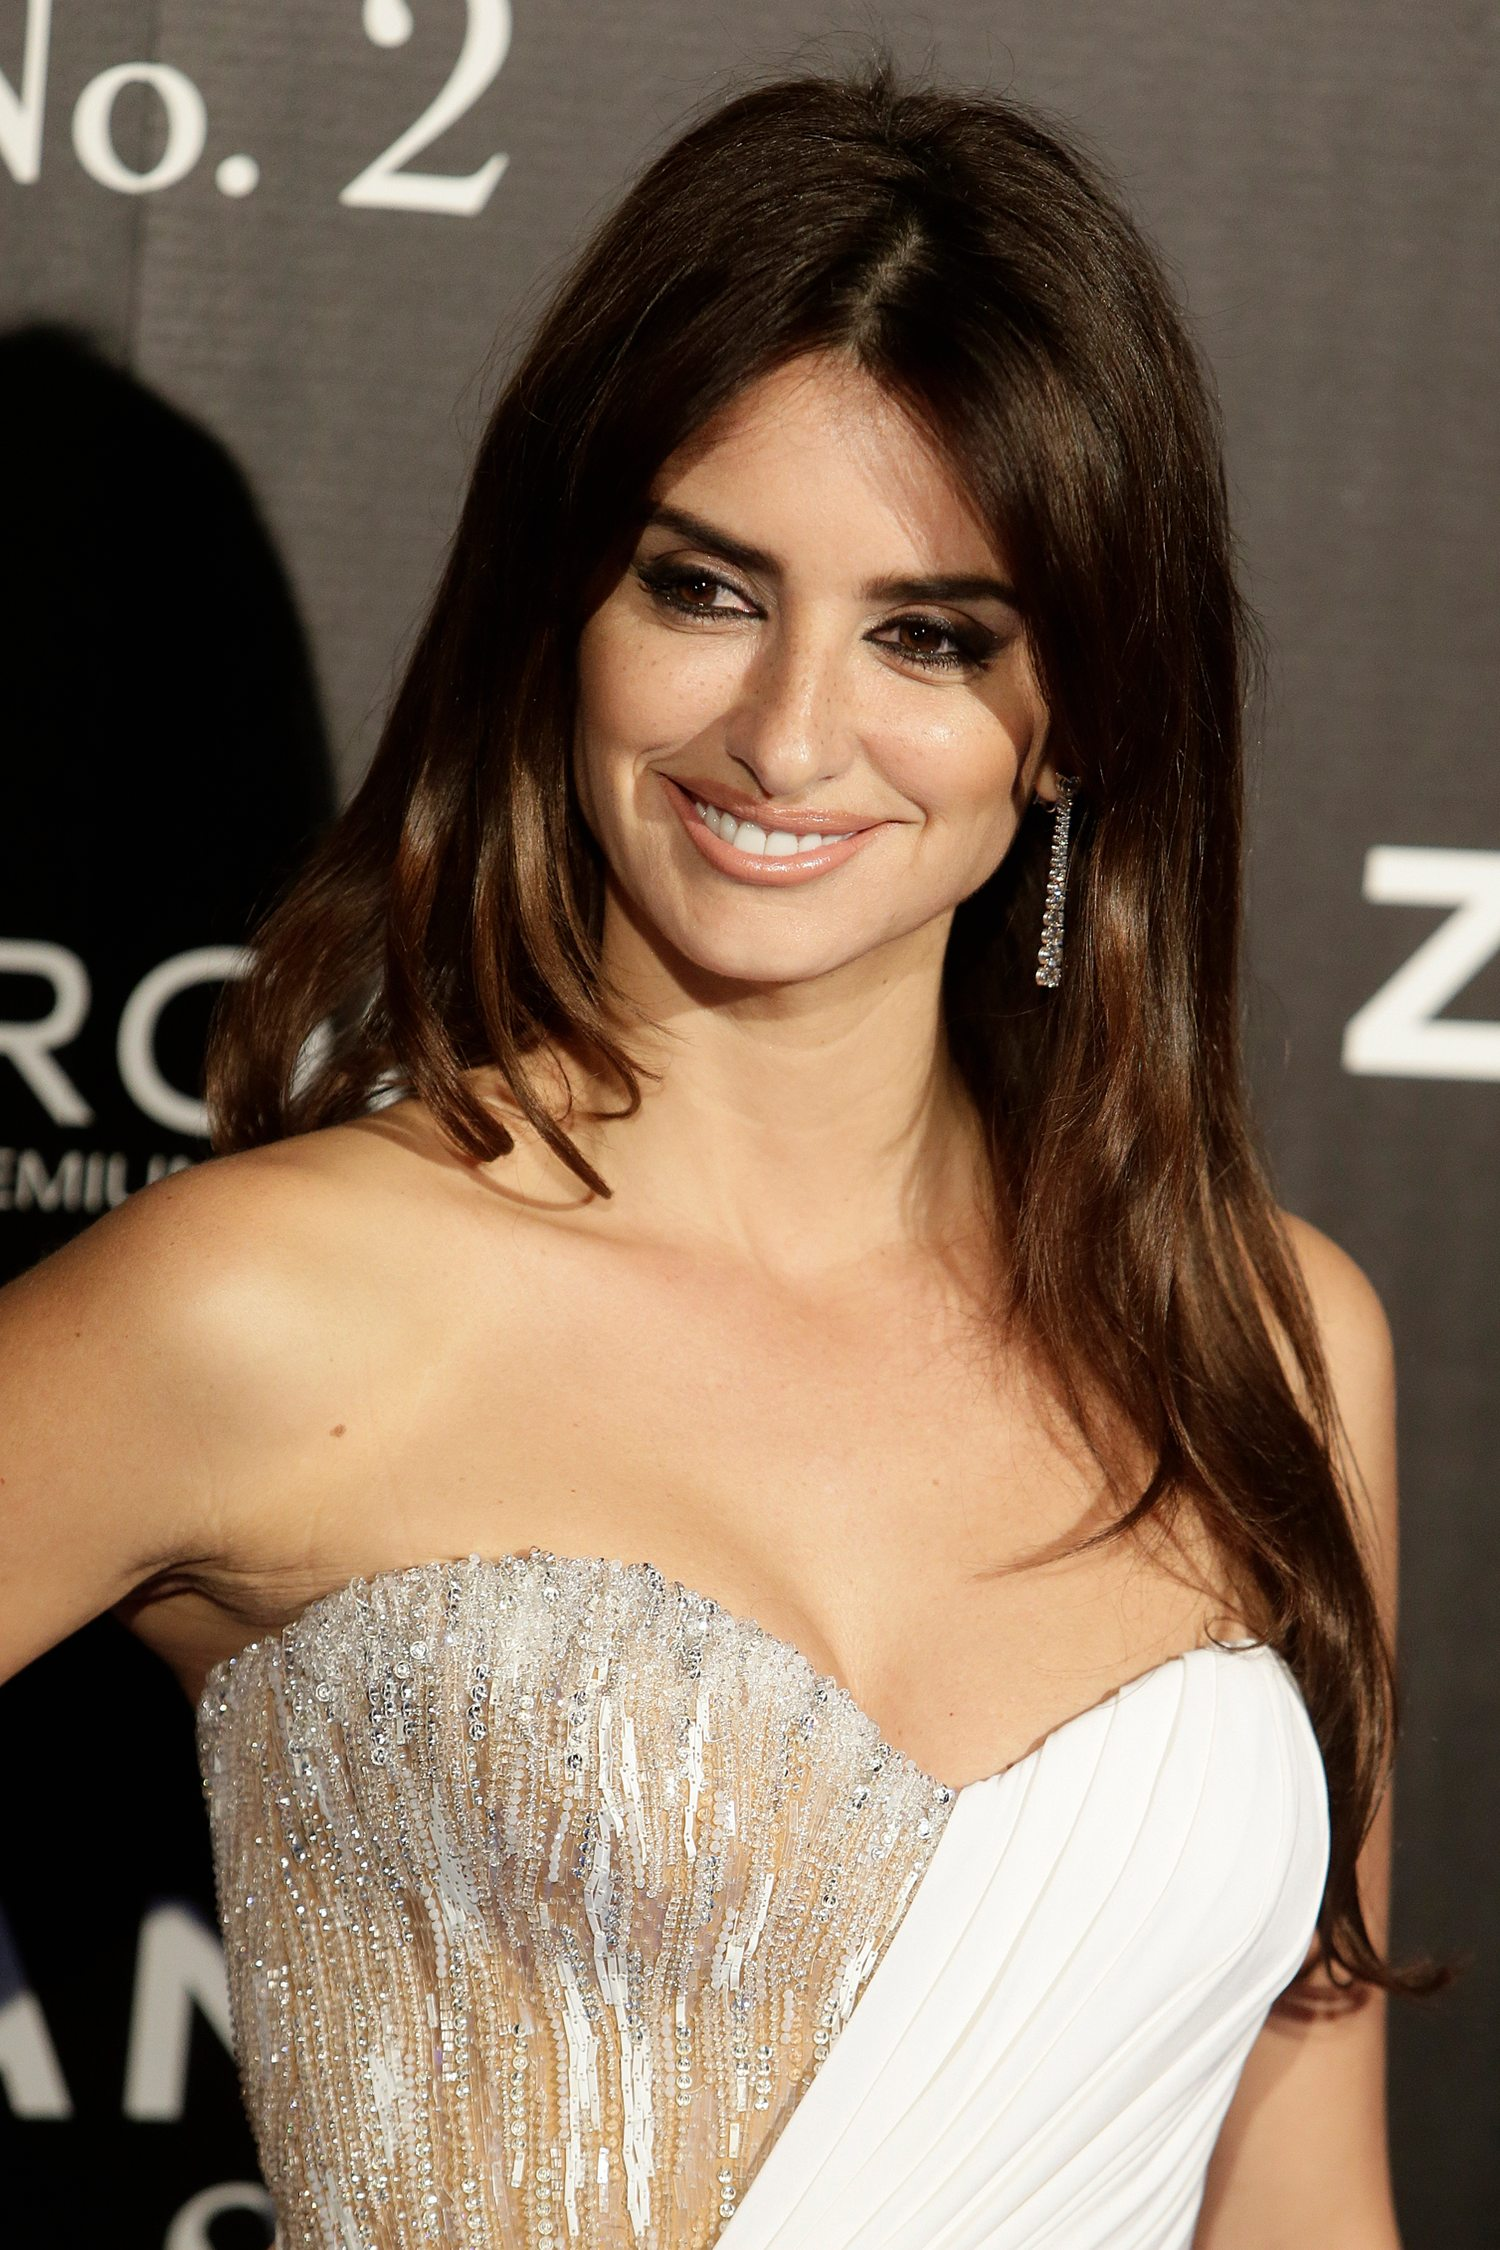 Penelope Cruz arrives at Zoolander Madrid Premierest-1